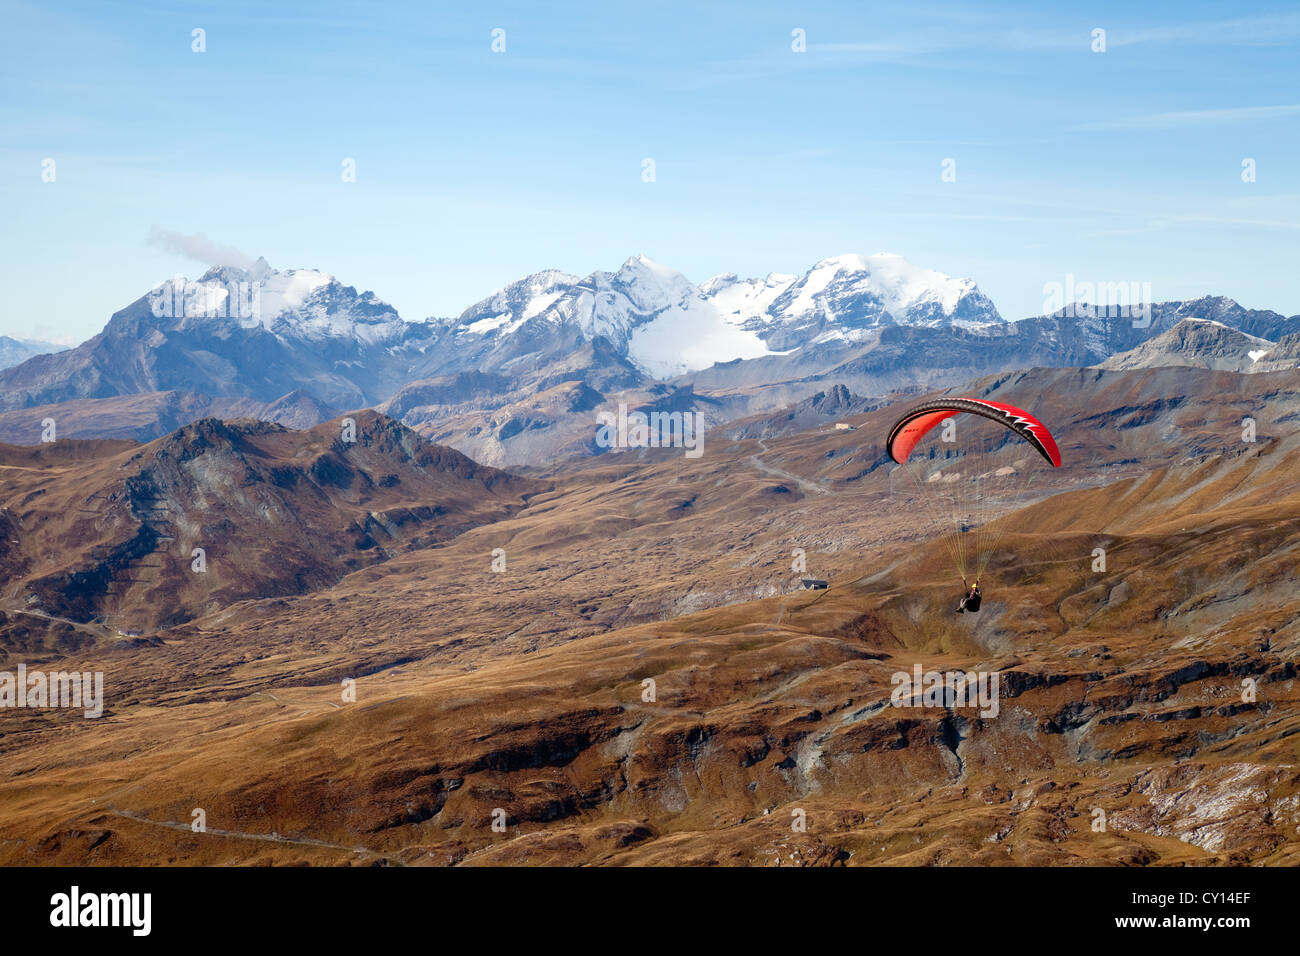 A paraglider paragliding, the Swiss Alps, Switzerland europe Stock Photo